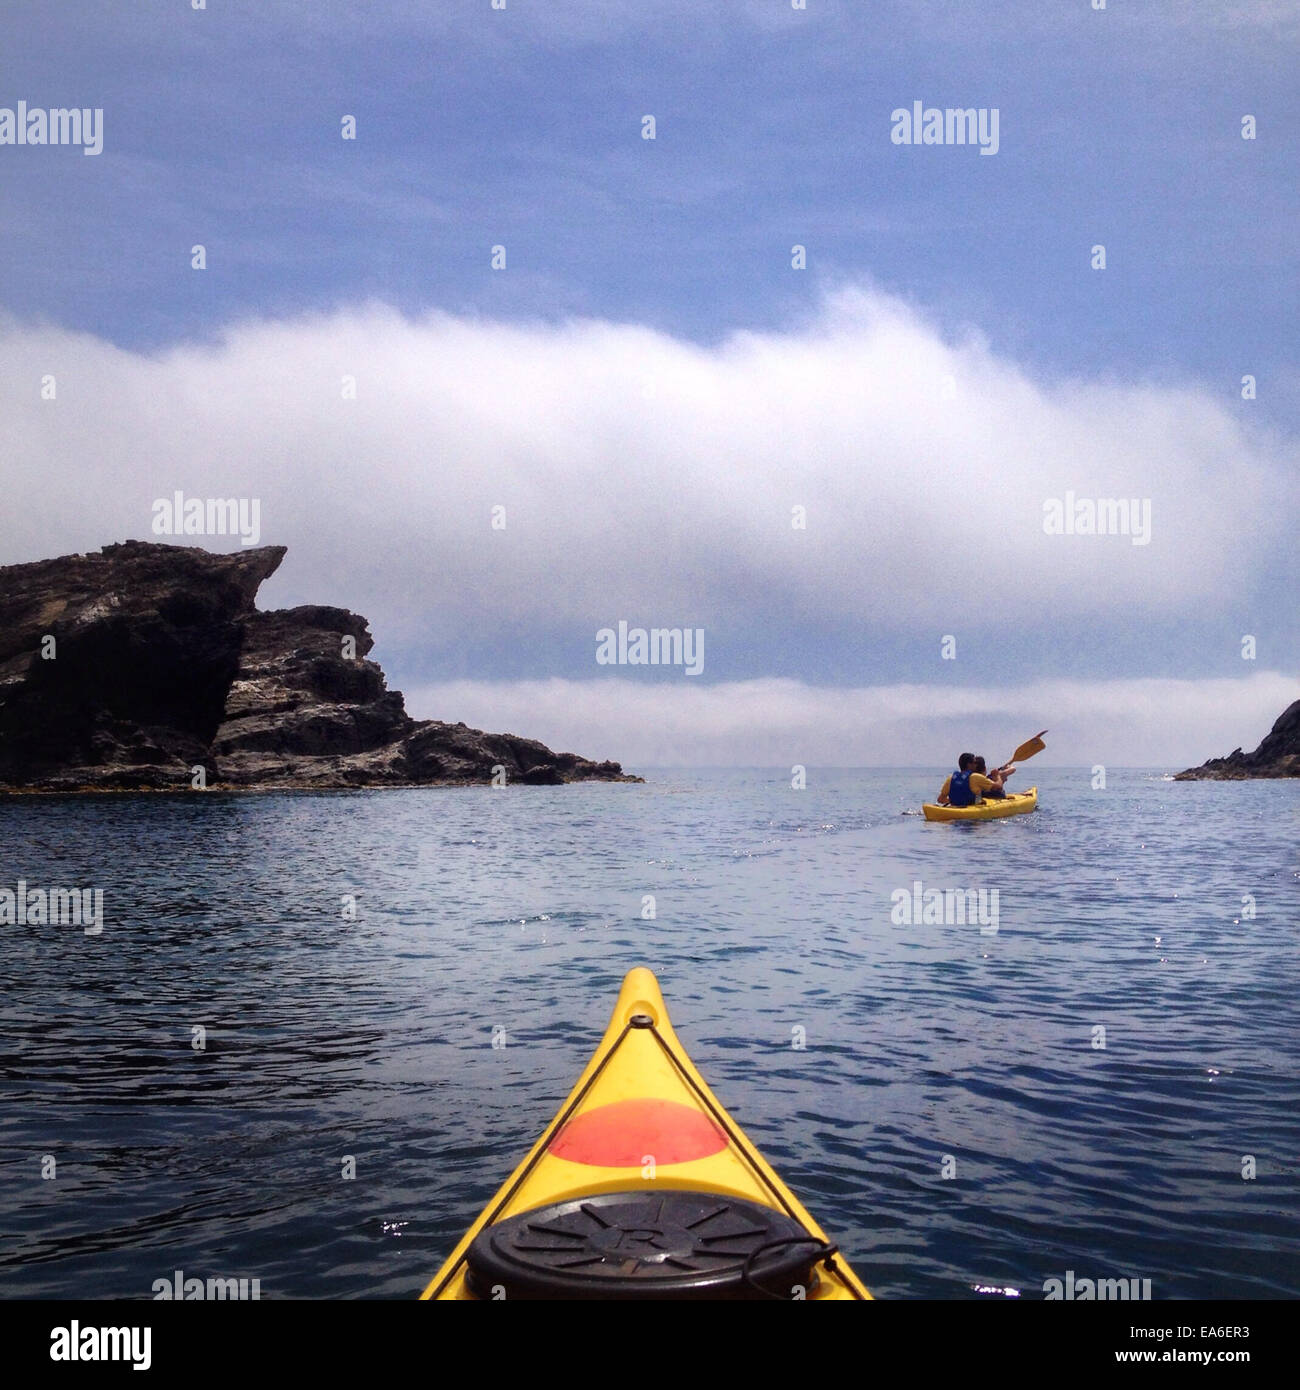 Spain, Costa Brava, Kayaking among cliffs - Stock Image